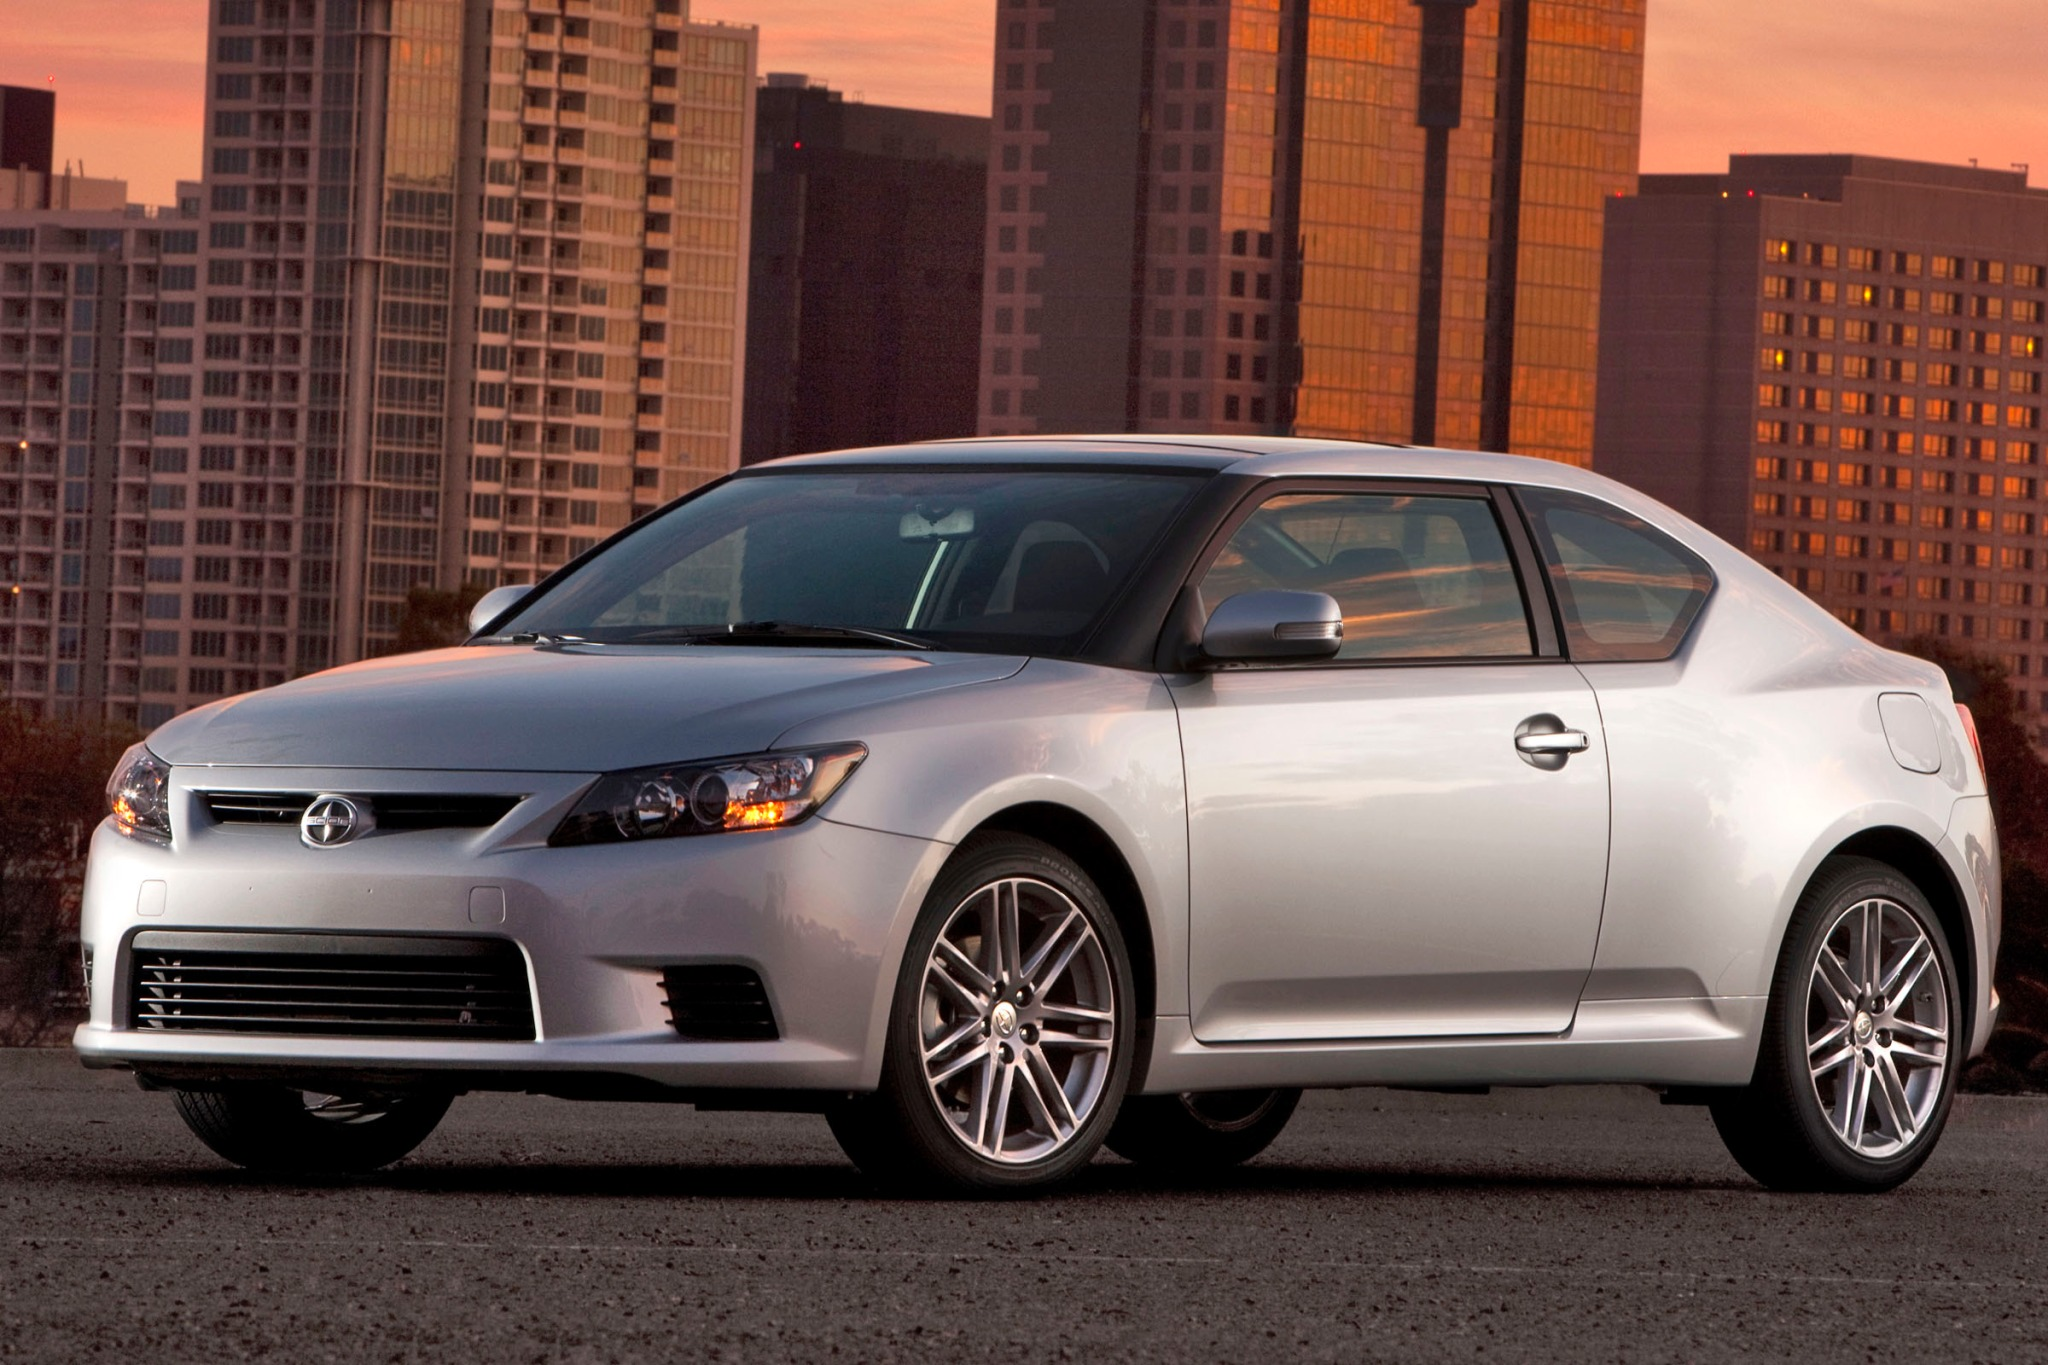 2013 Scion tC 2dr Hatchba exterior #4